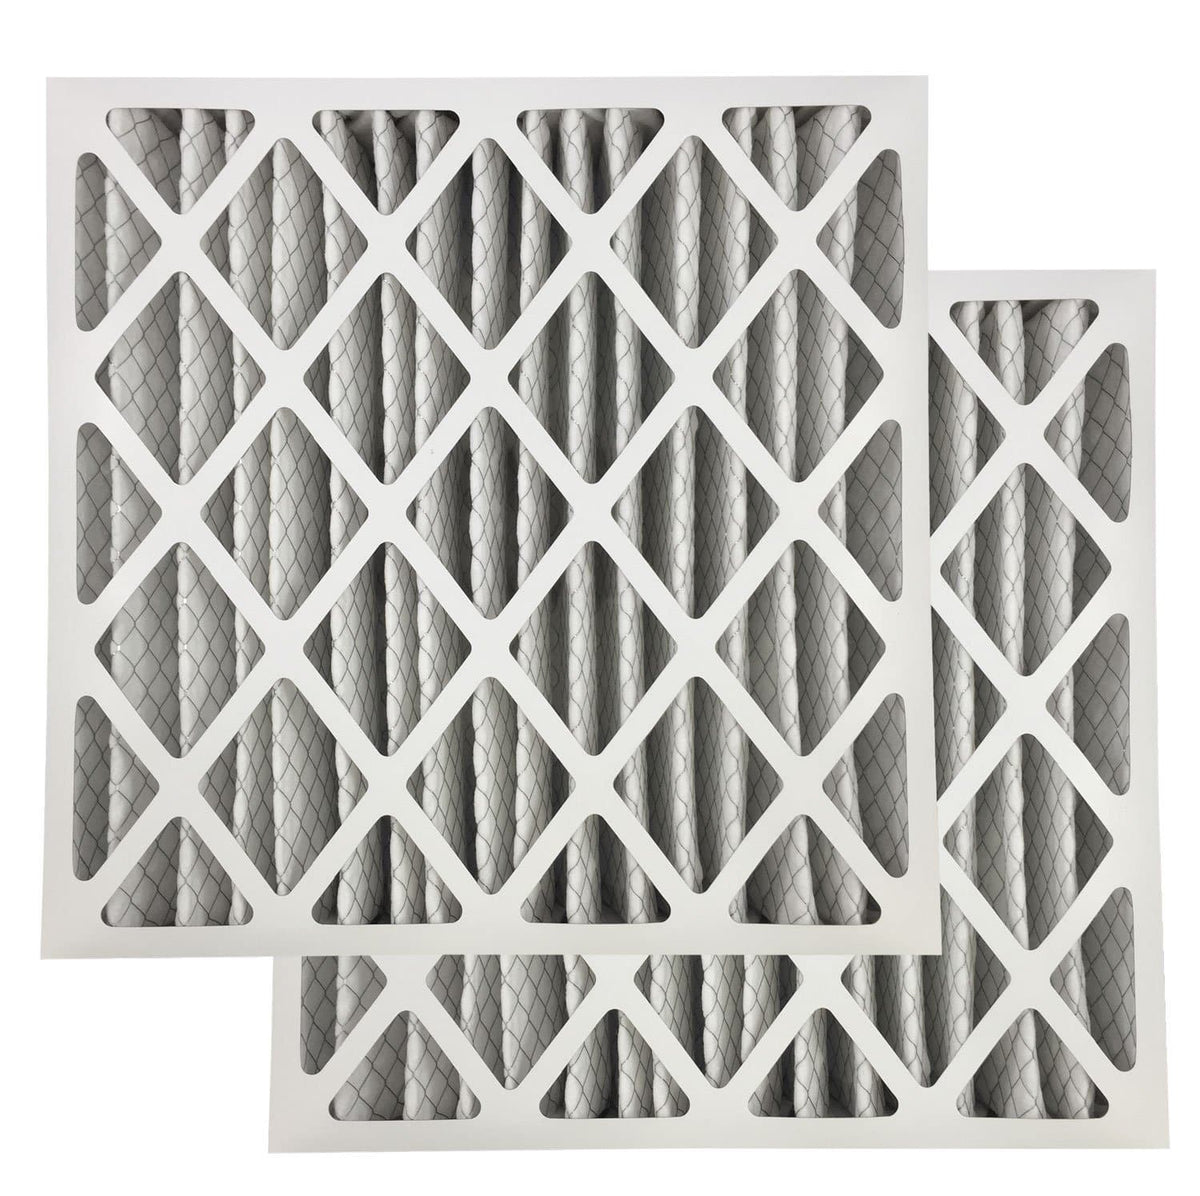 Atomic FC200E1011 20x20x4 MERV 13 Honeywell Replacement Furnace Filter - 2 Pack